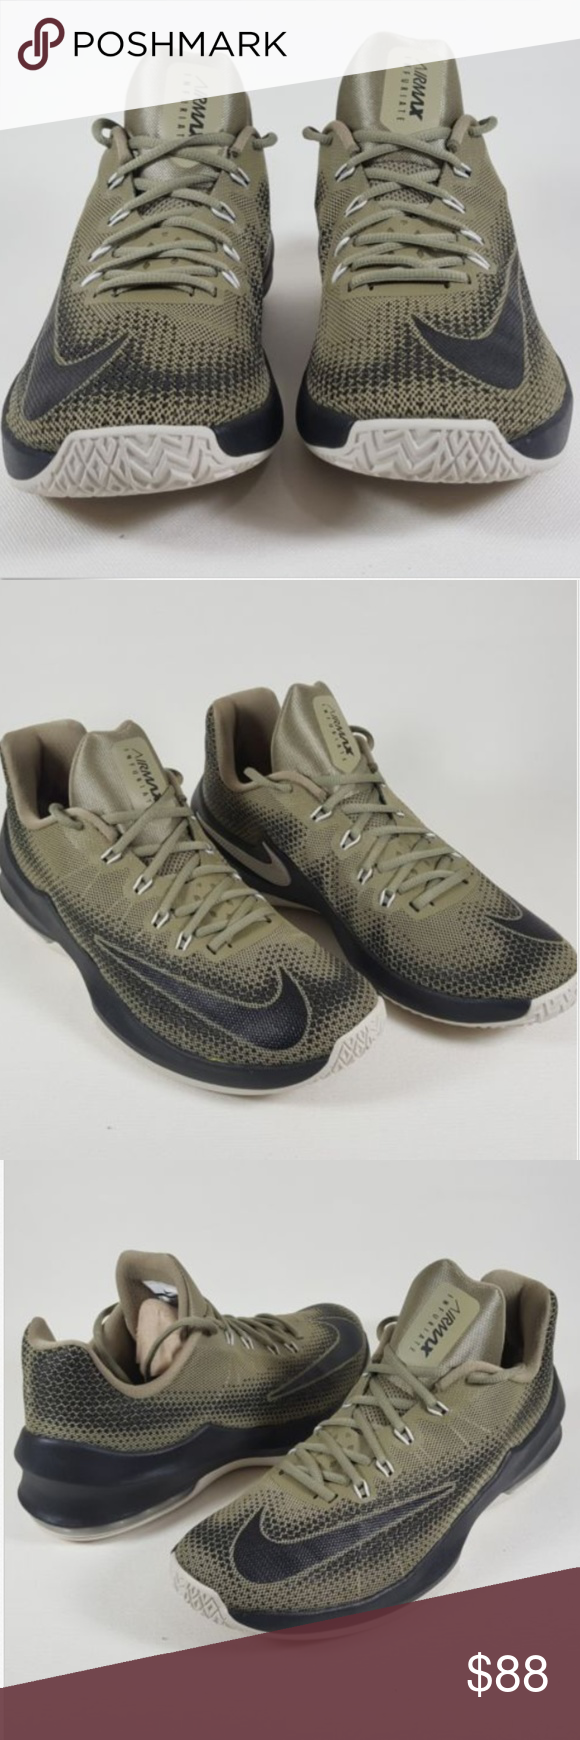 pretty nice 9e1c5 91c02 Nike Air Max Infuriate Low Green Sneakers  Brand New, Unused. Ships without  box  Nike Air Max Infuriate Low 852457-200 Trooper Black Cargo Green Men s  Size ...